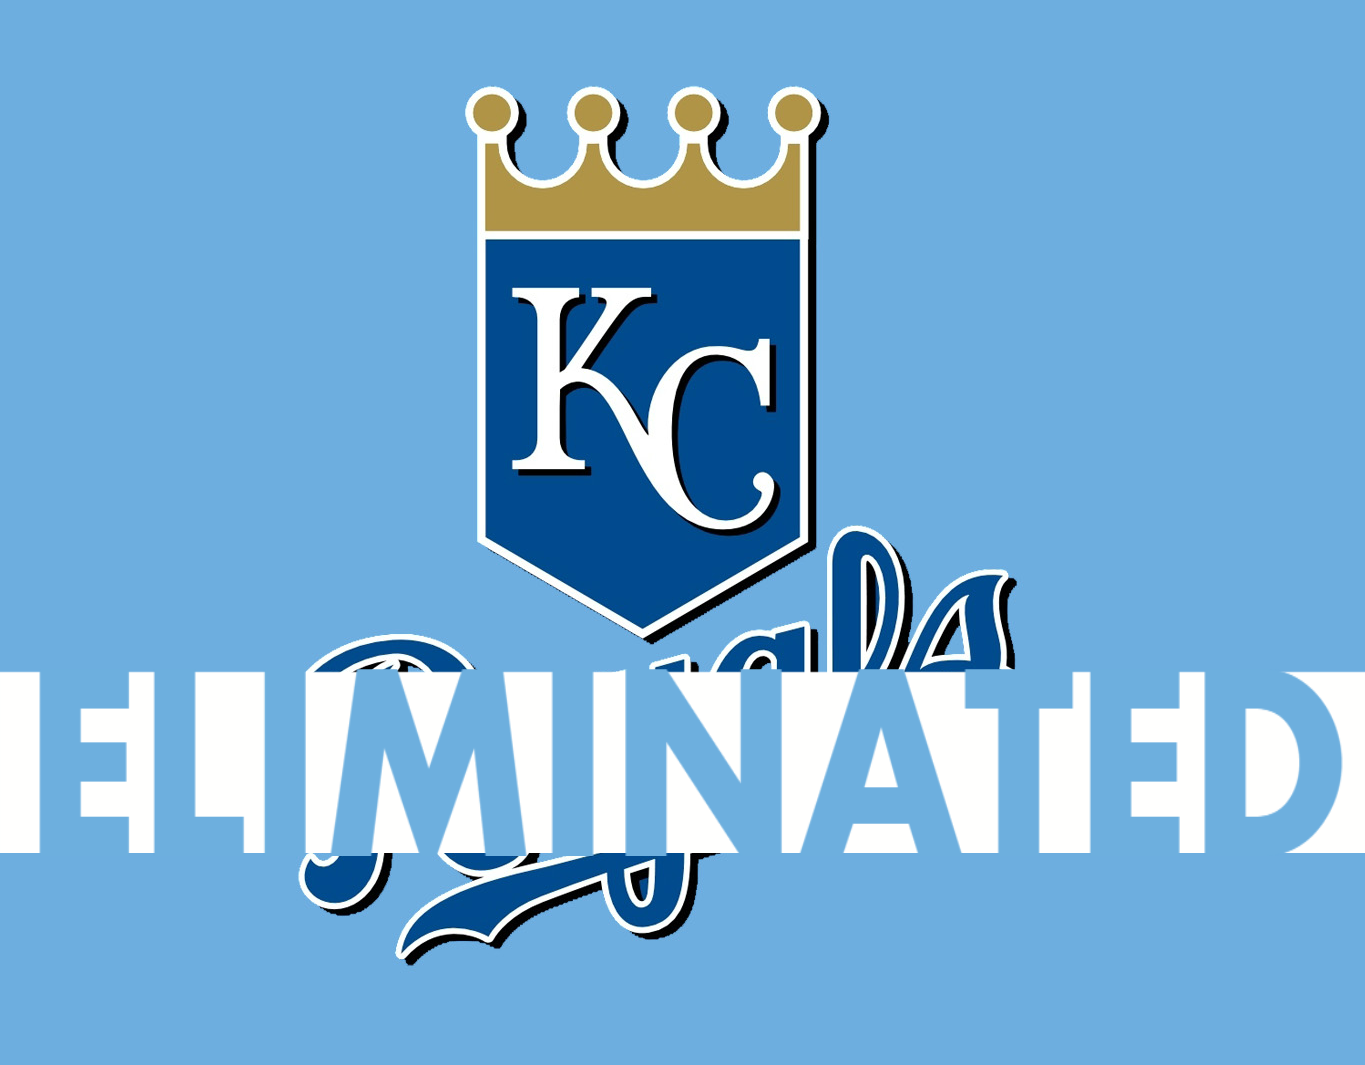 Royals Officially Eliminated From Postseason